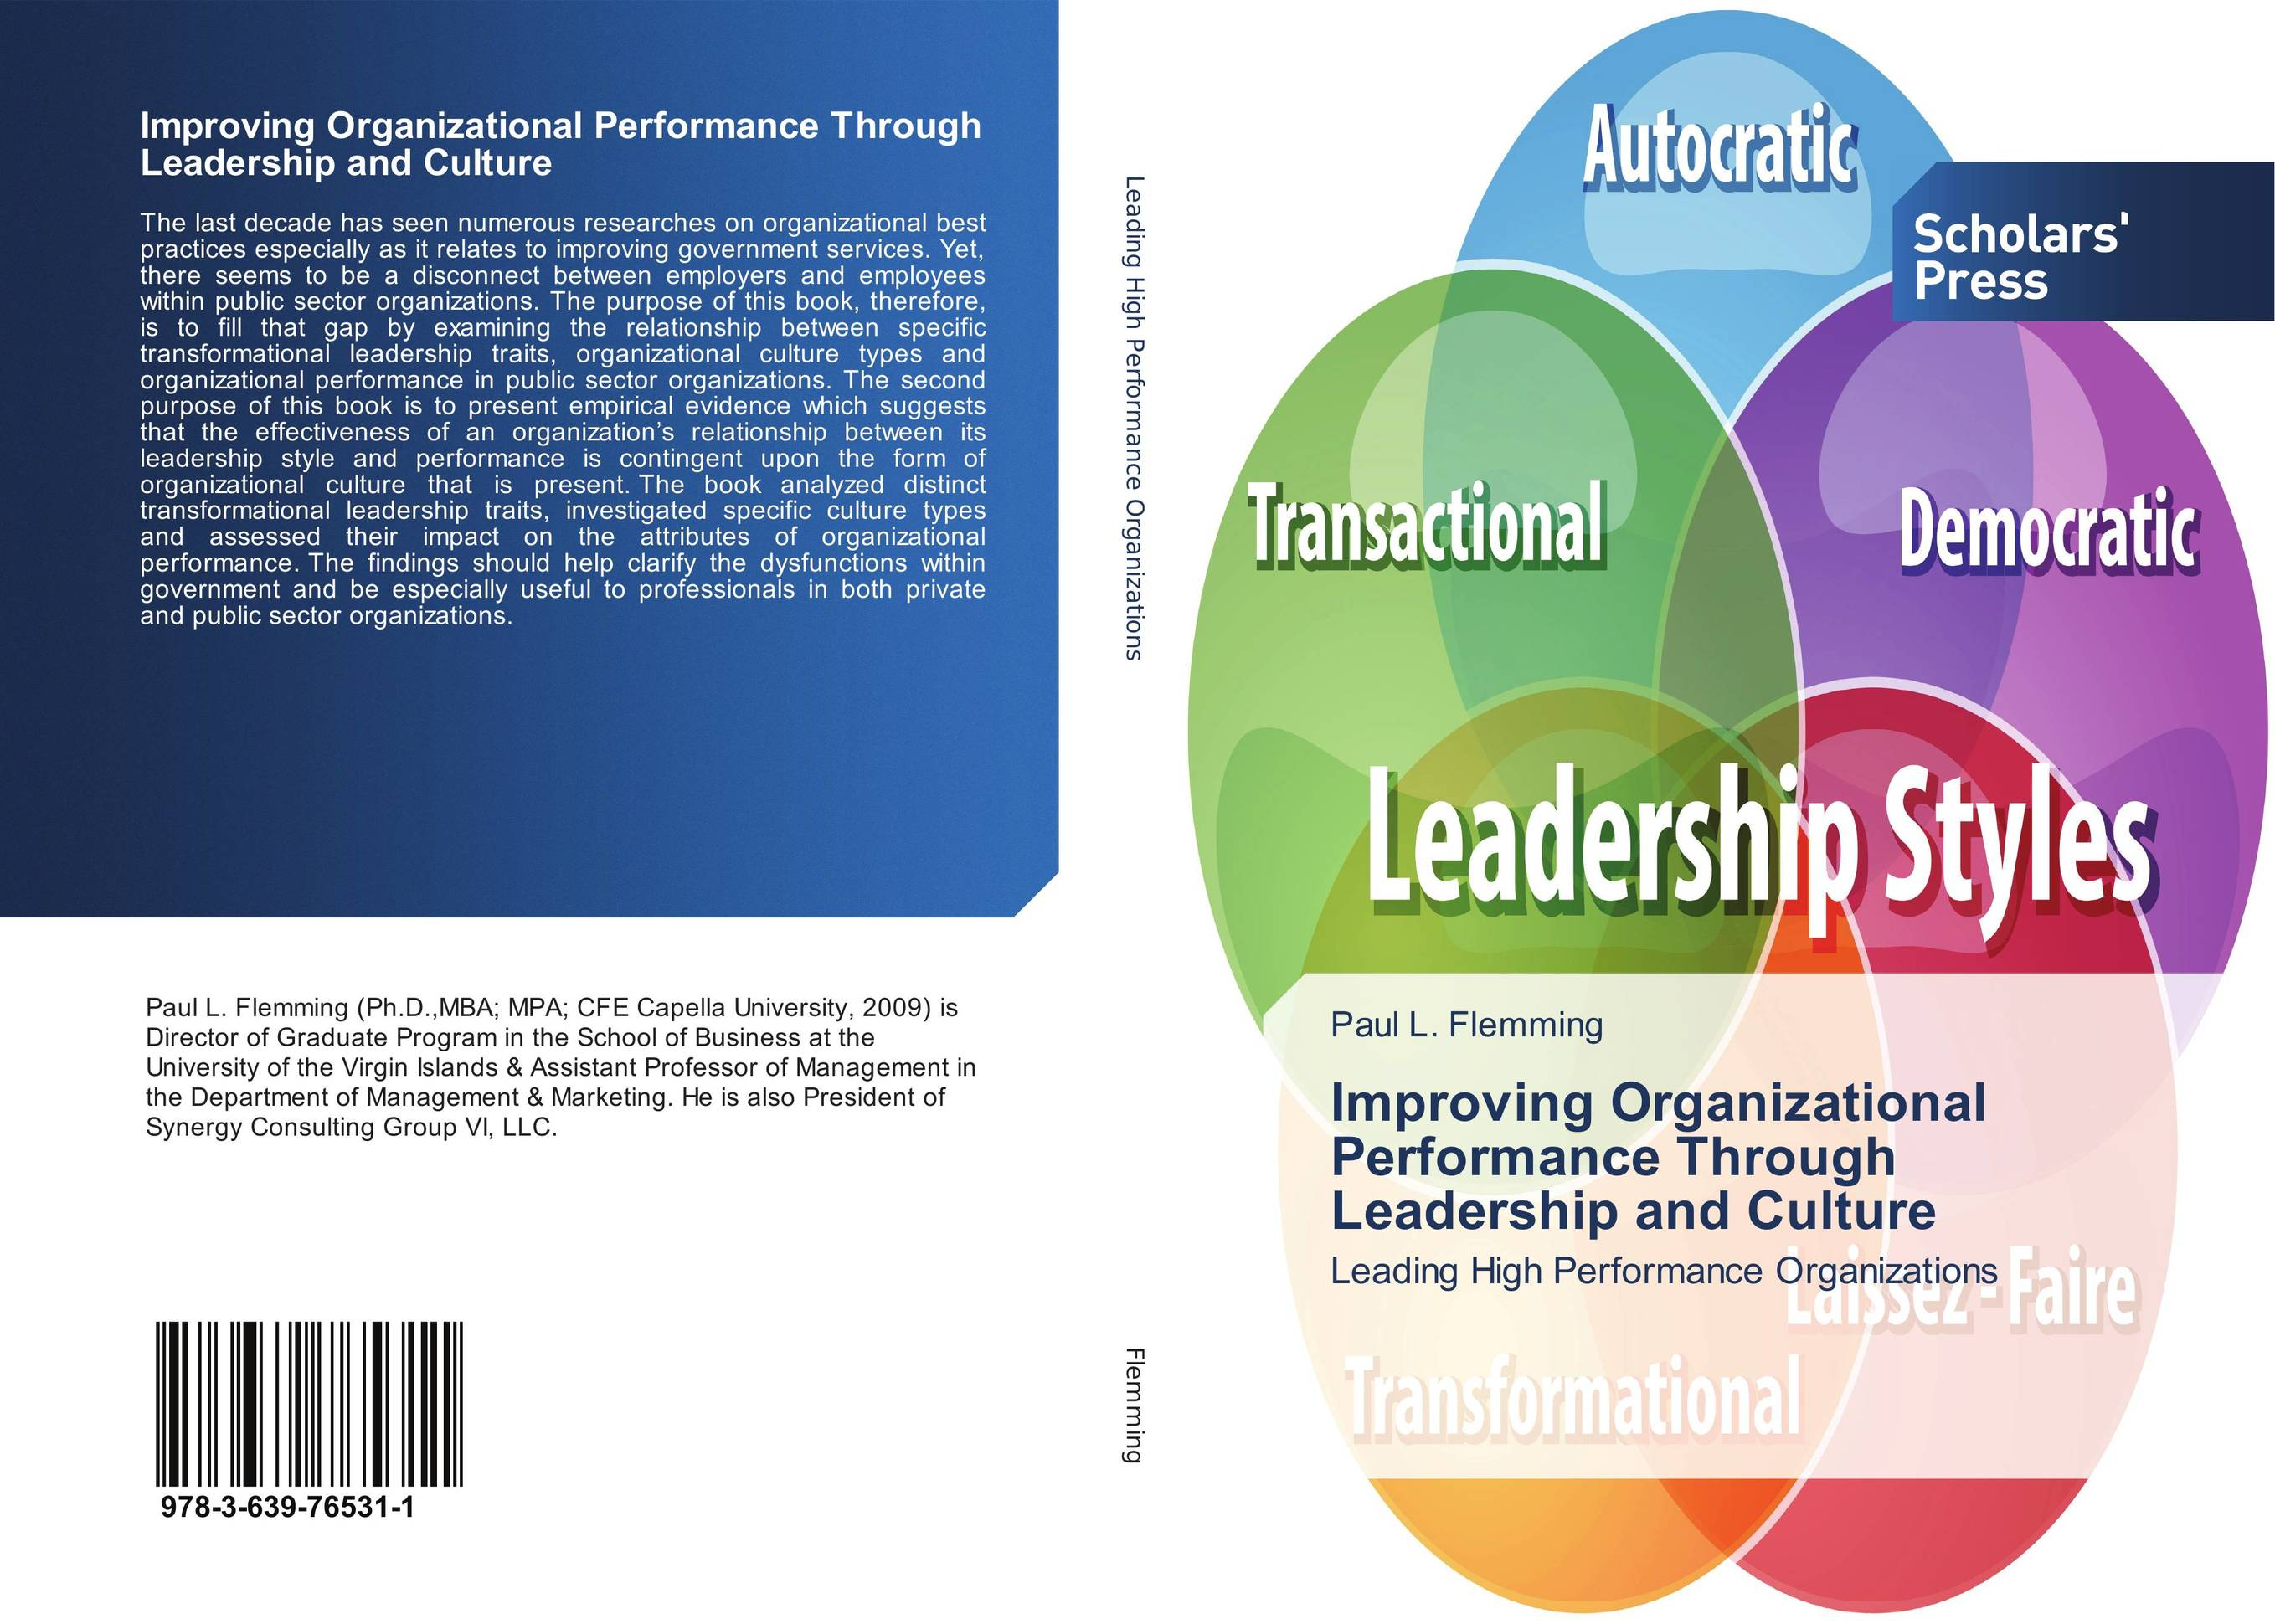 tactical leadership and organizational leadership Leadership: leadership and organizational culture essay organizational culture by one individual organizational culture is when an organization has developed common beliefs, values and assumptions, which are expressed through architecture, ceremonies, rituals, dress, and other visible artifacts.